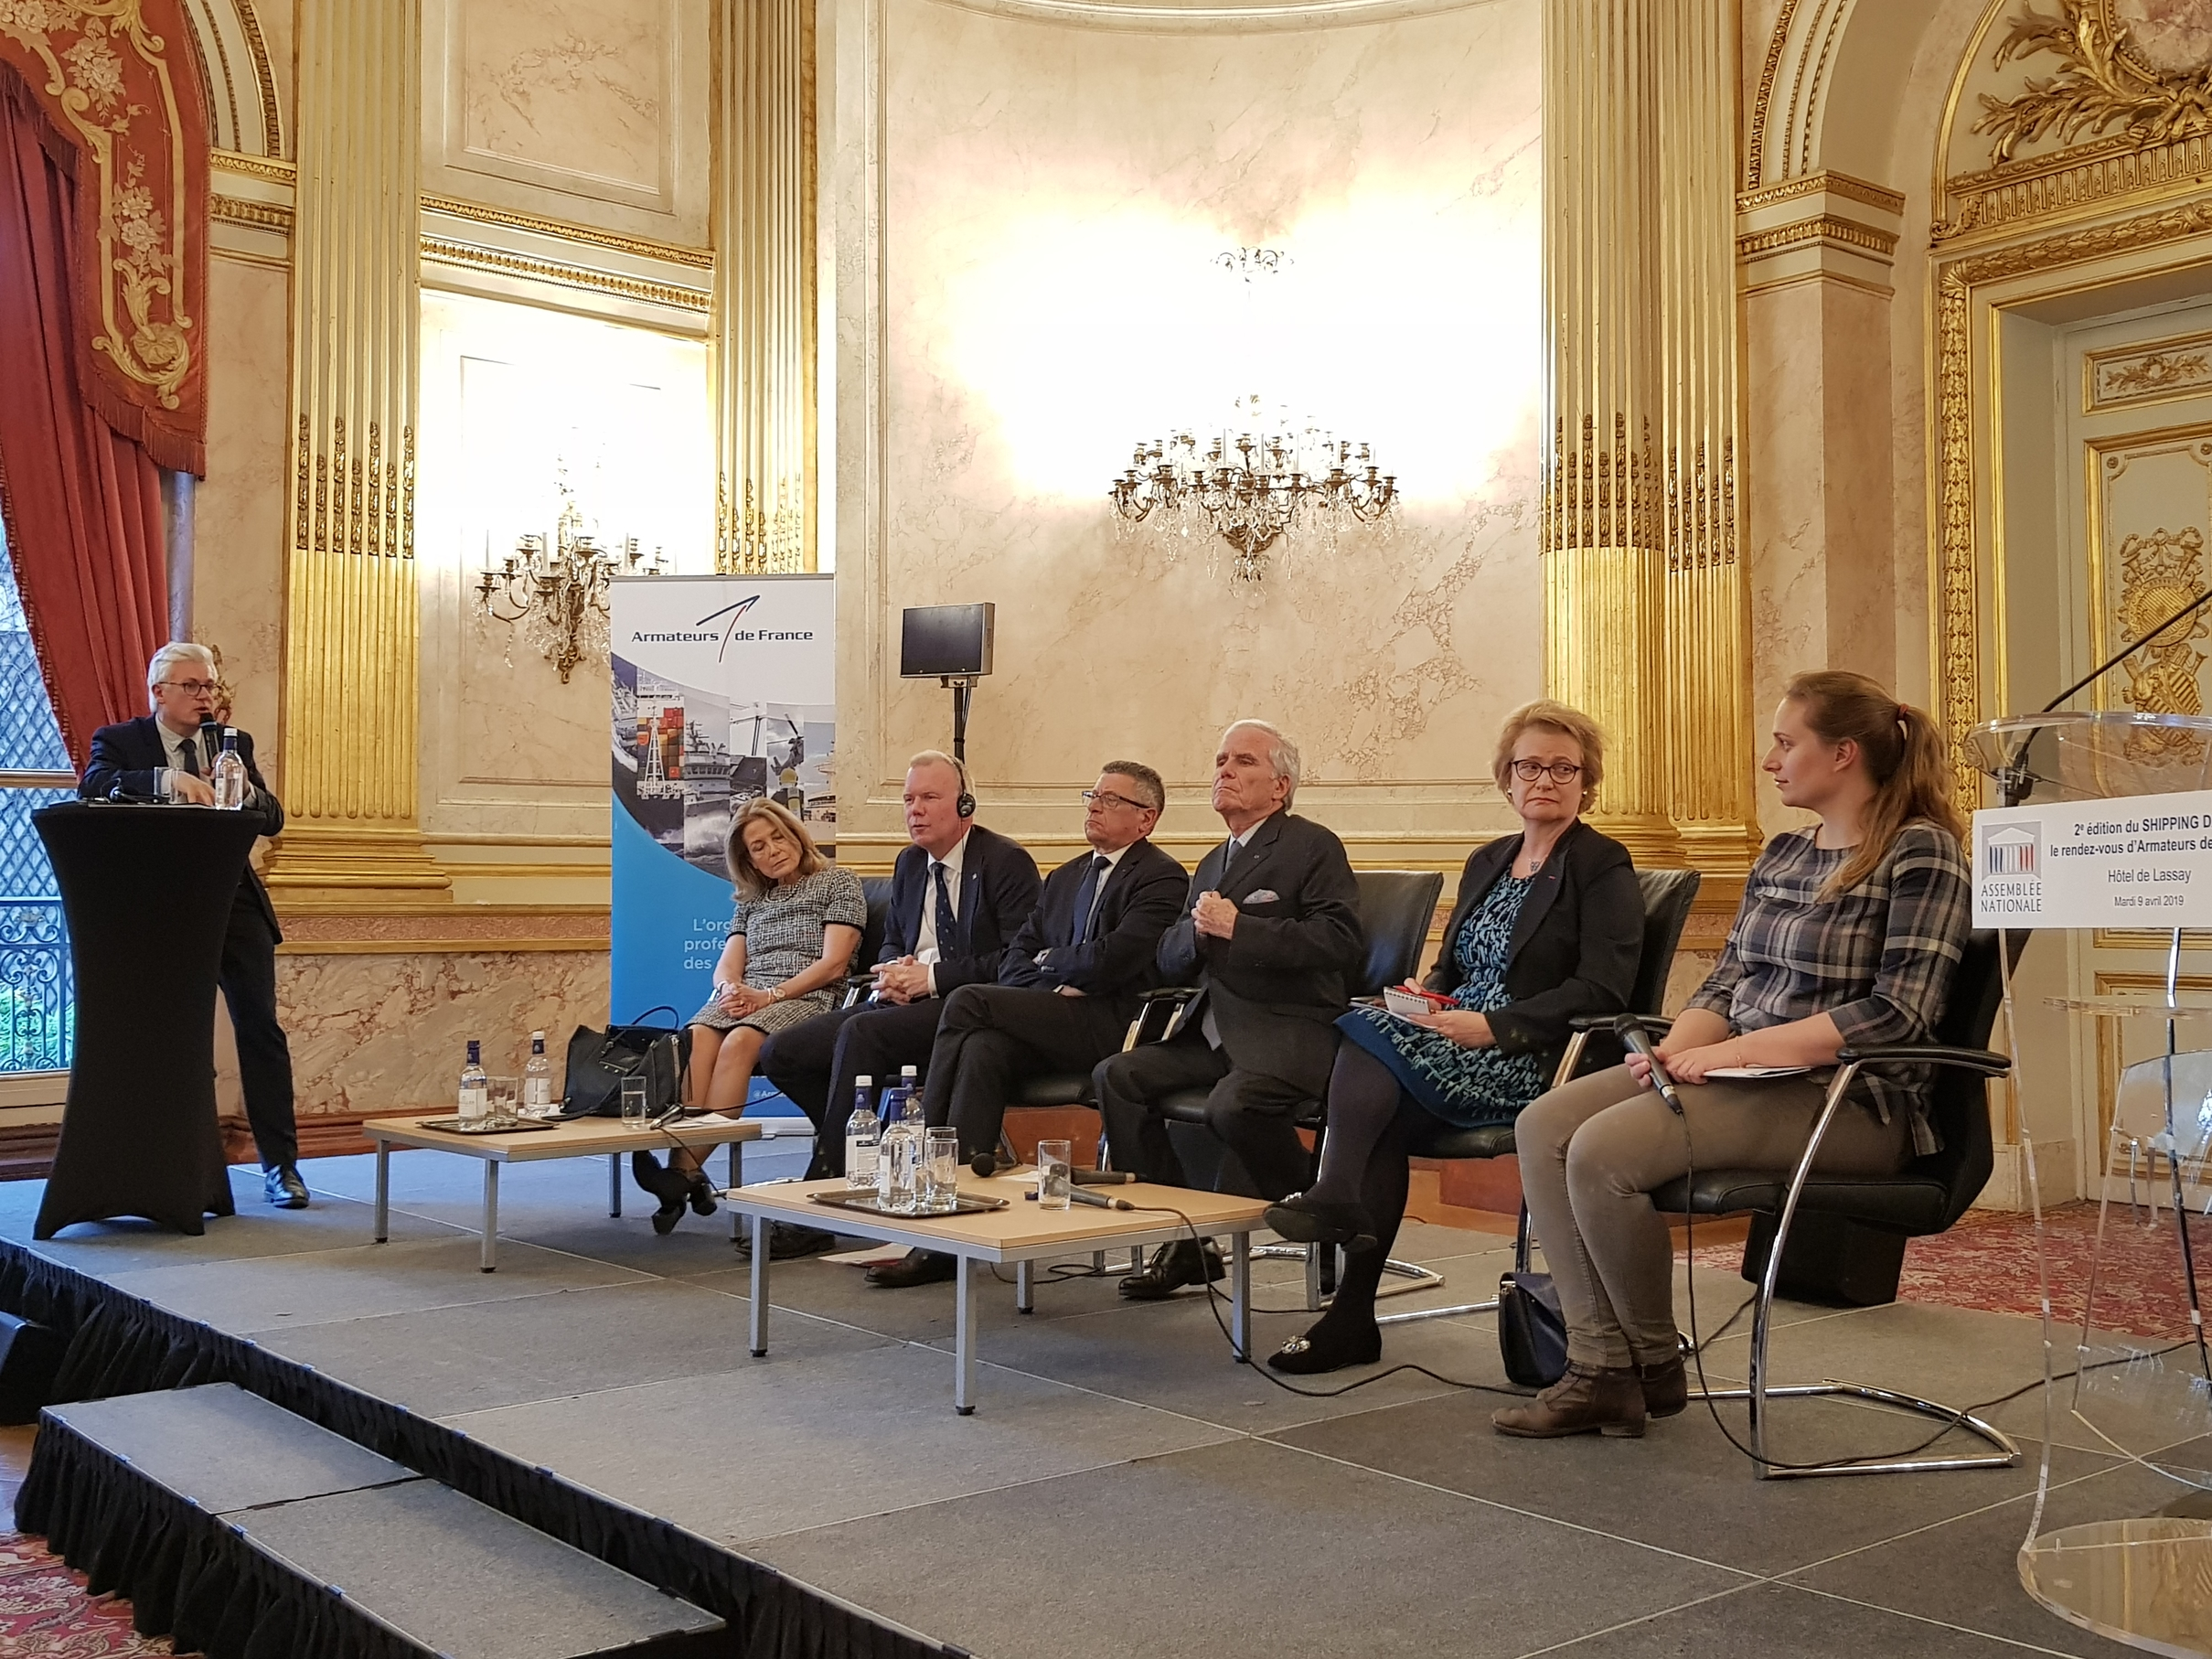 SHIPPING DAY 2019 : LES ACTIONS ENVIRONNEMENTALES DU SHIPPING